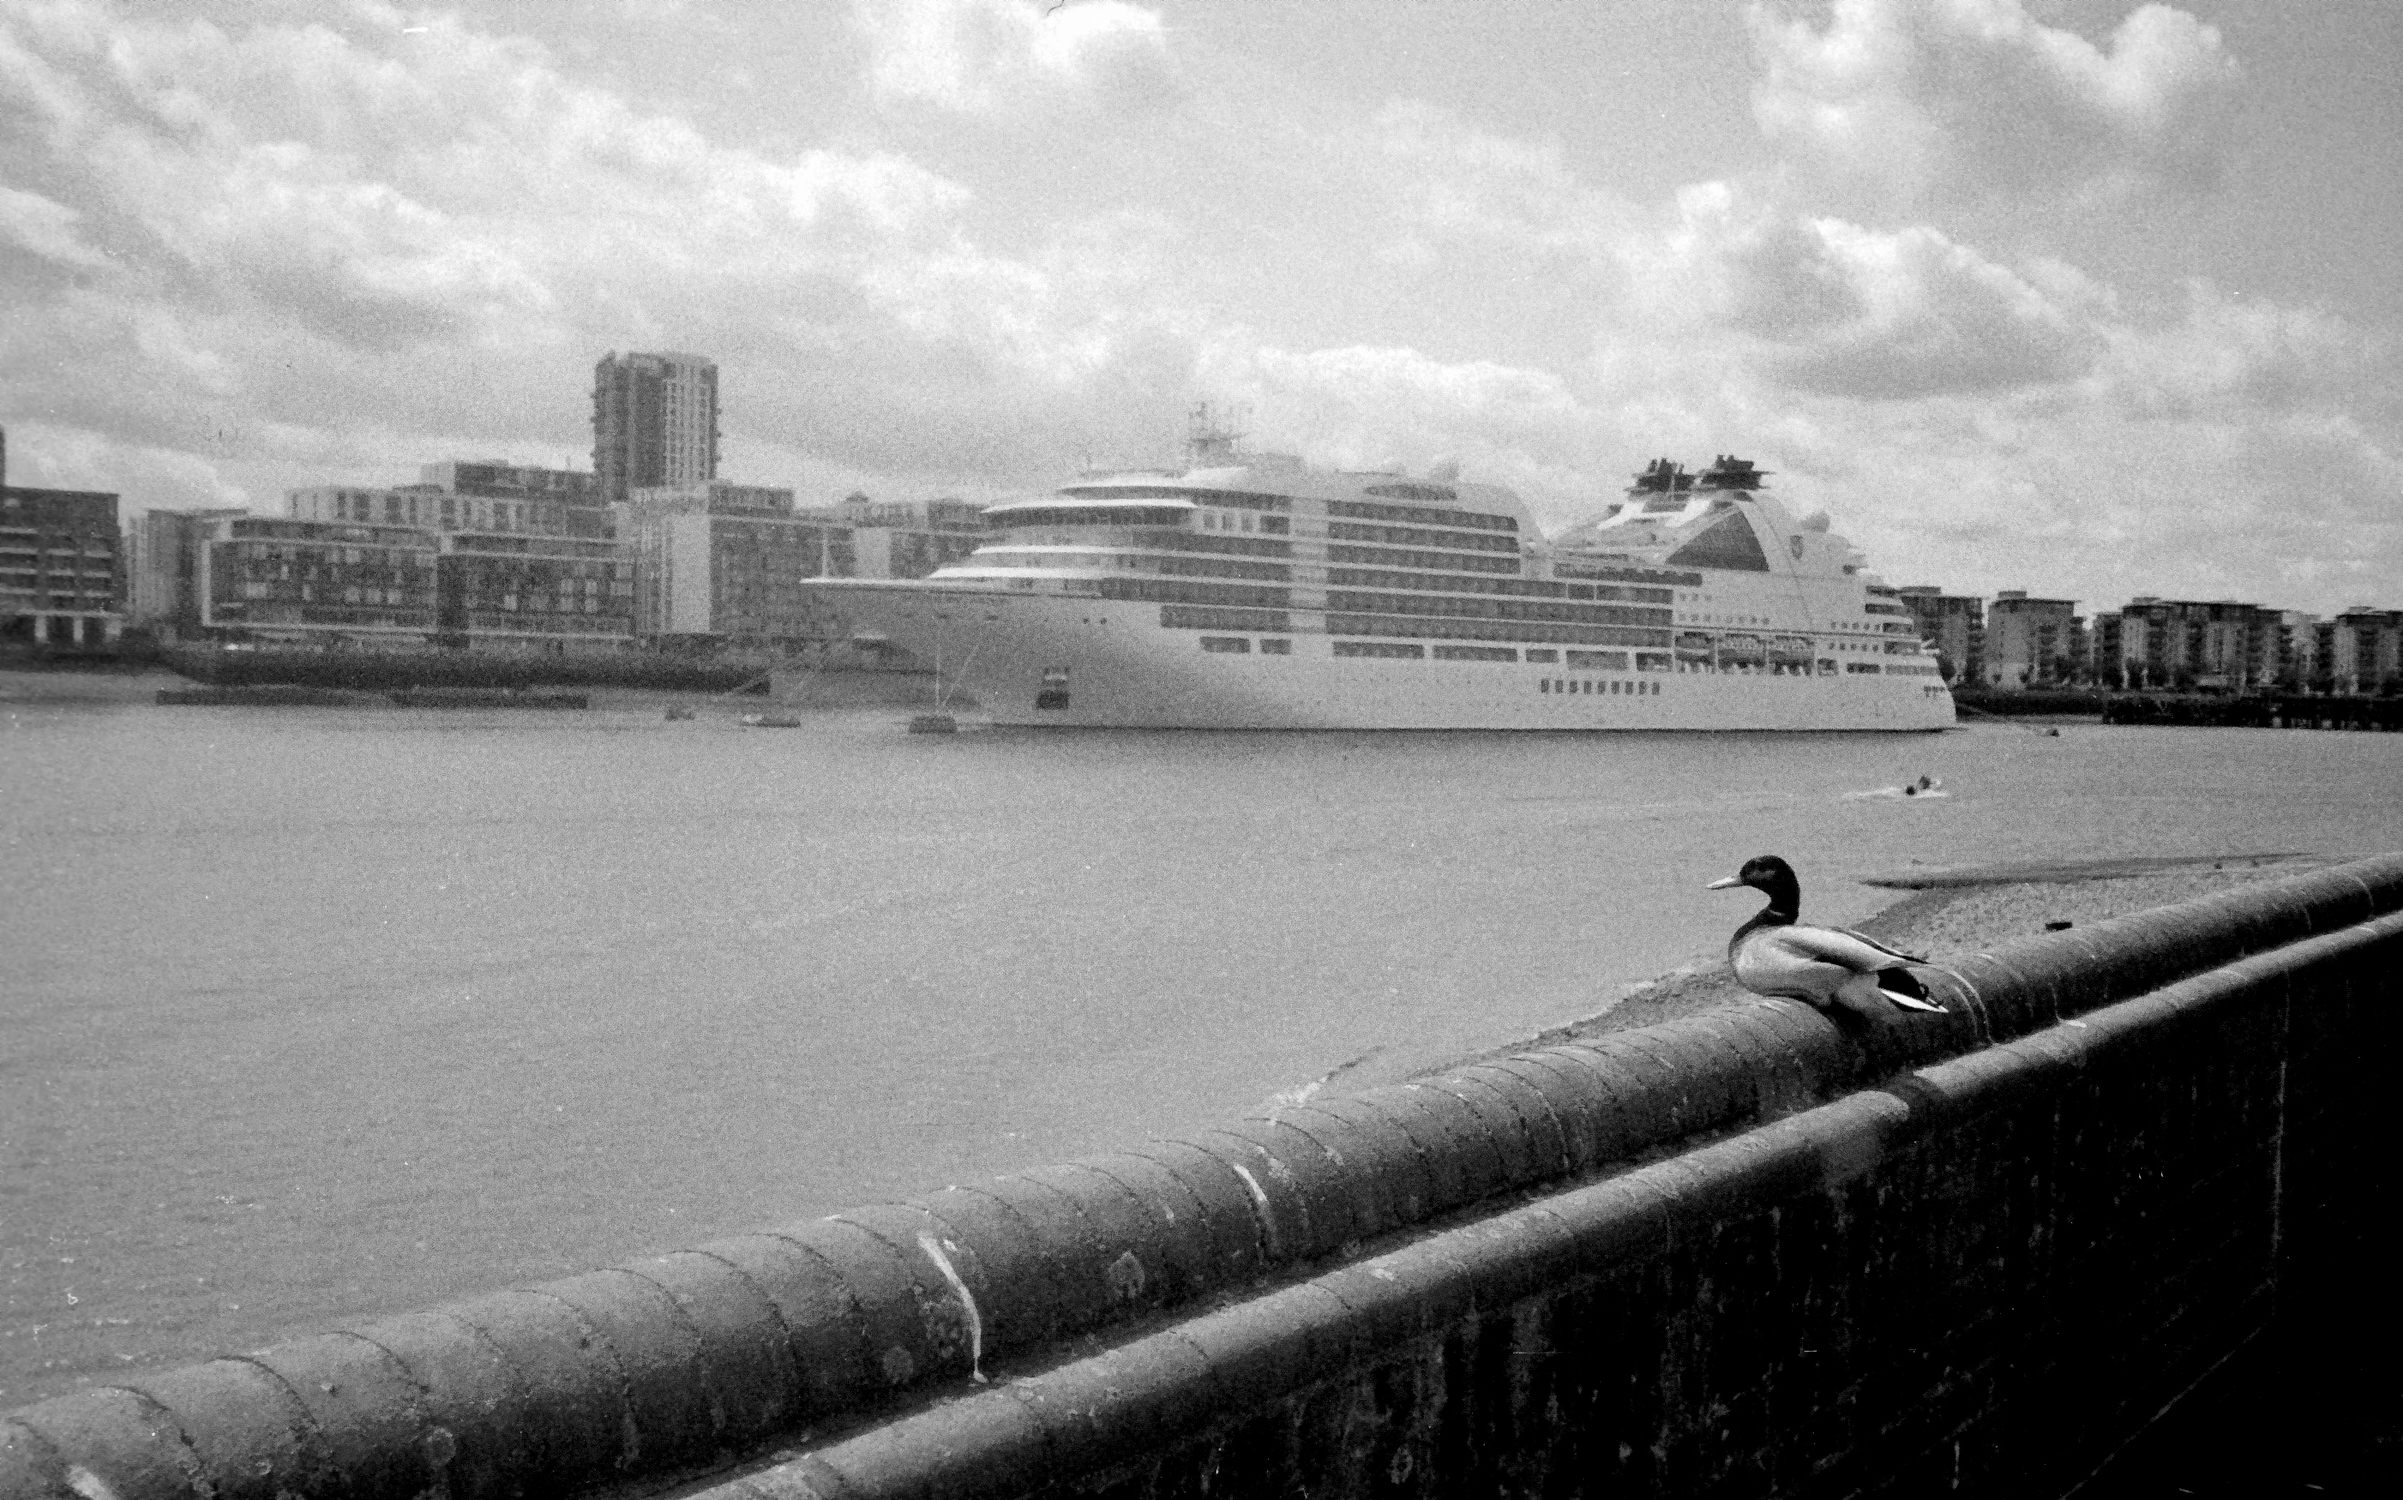 Duck on wall and cruise ship (Pic: Stephen Dowling)